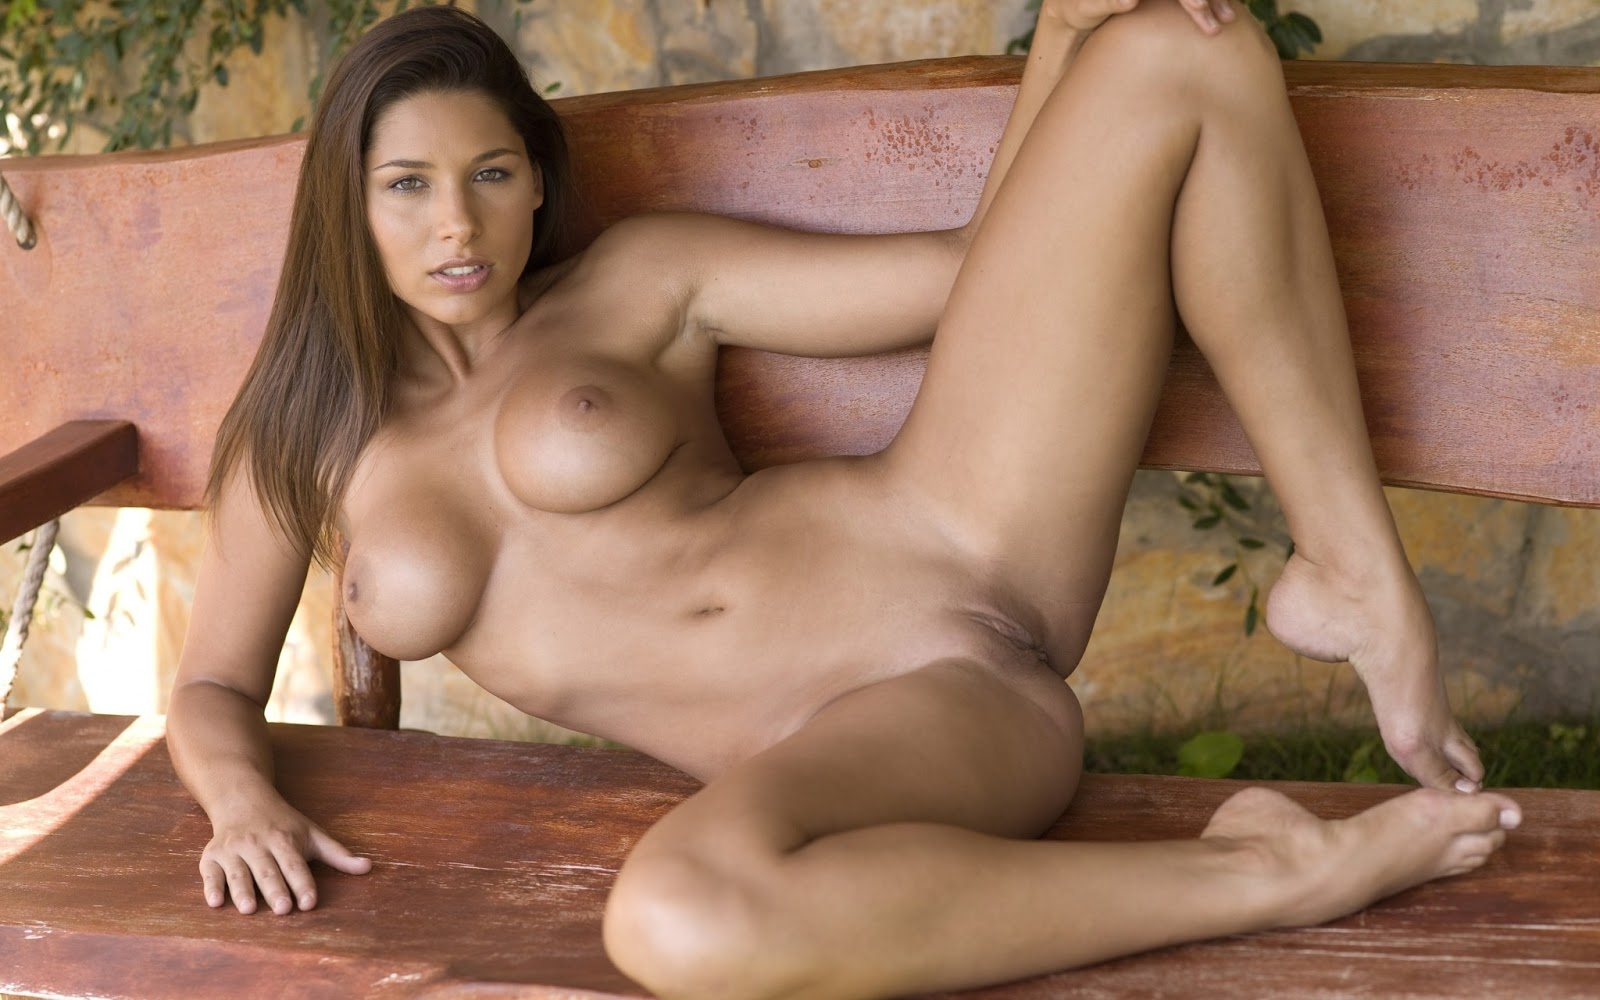 nude girl hd picd